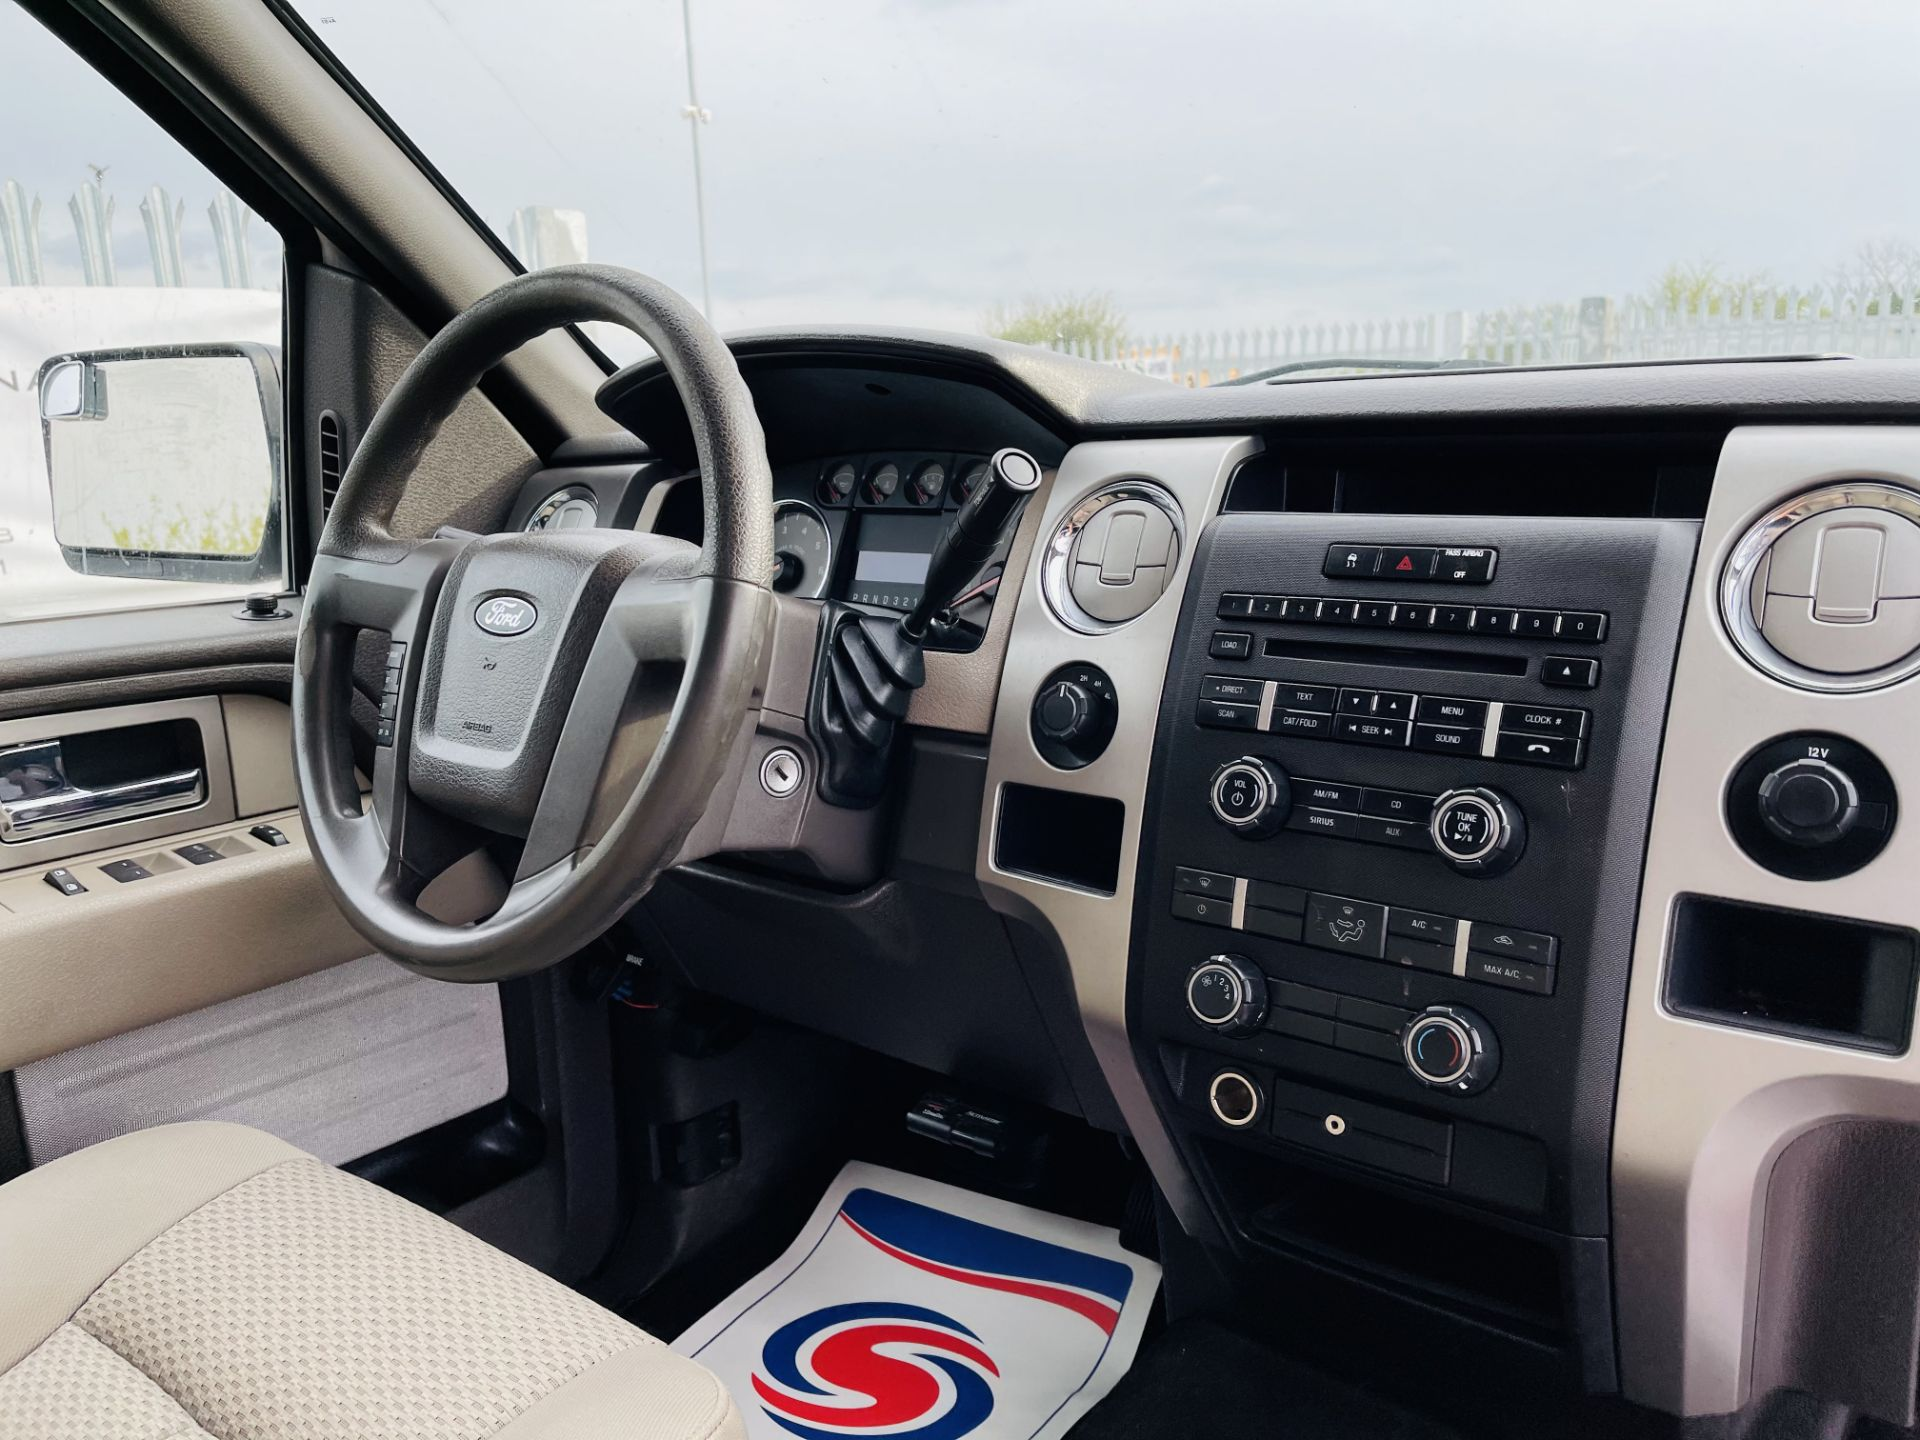 Ford F-150 XLT 4.6L V8 Super-crew 4WD 2010 ' 2010 Year' 6 Seats - Air con - NO RESERVE - Image 21 of 24